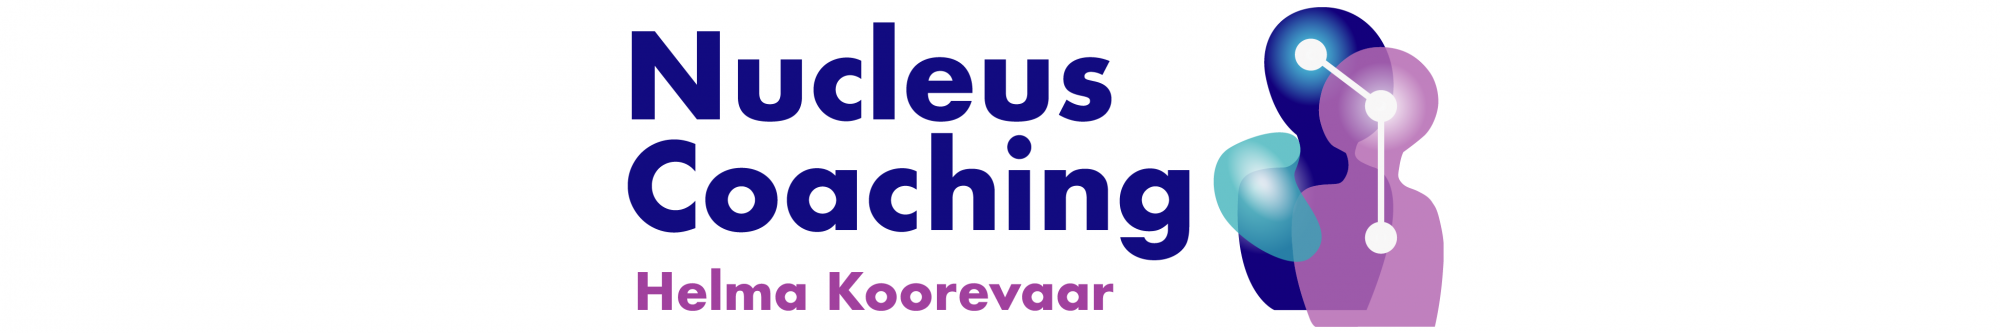 Nucleus Coaching